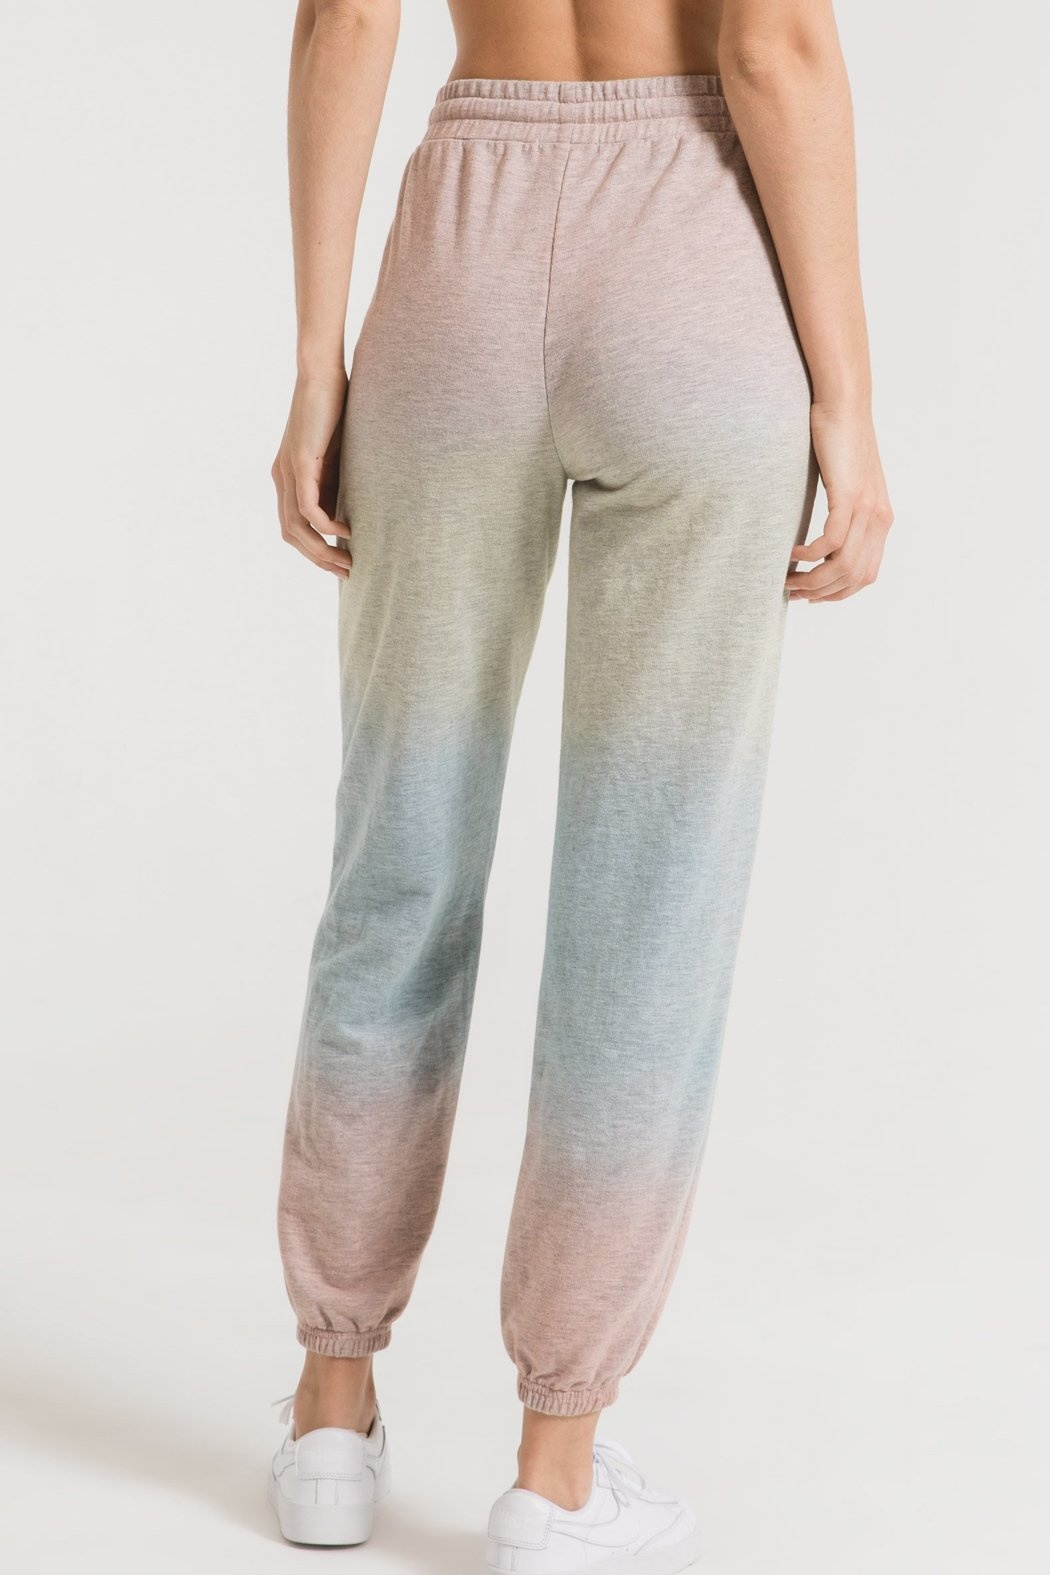 Z Supply Ombre Jogger